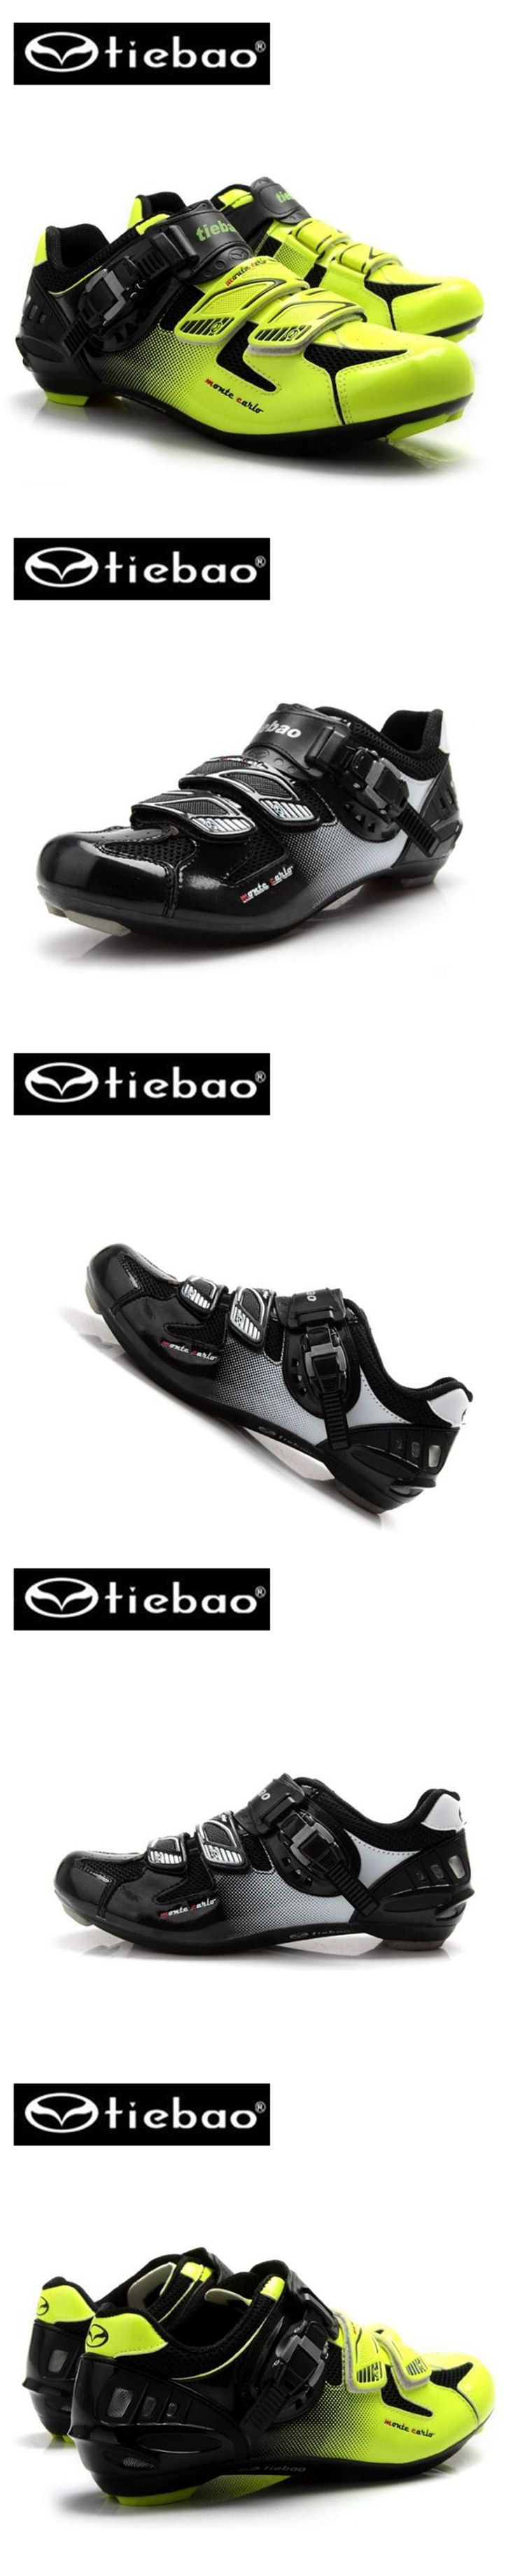 Tiebao New Tiebao Bicycle Racing Sports Road Cycling Shoes Breathable Athletic MTB Road Bike Auto-lock Shoes